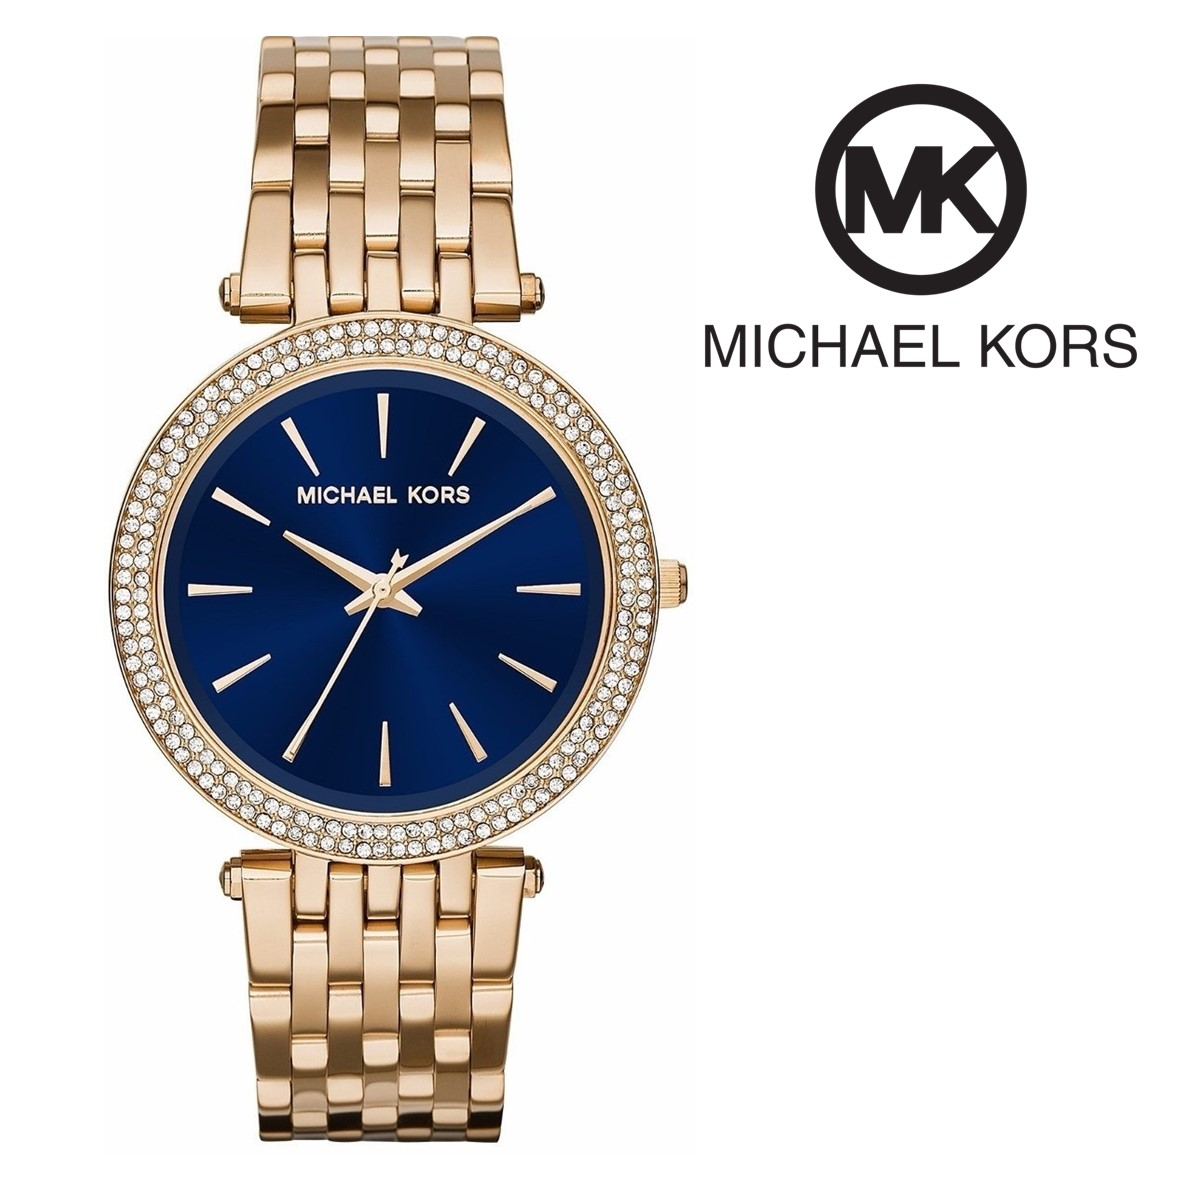 Relógio Michael Kors® Darci Blue   5ATM - You Like It 16722f42ab